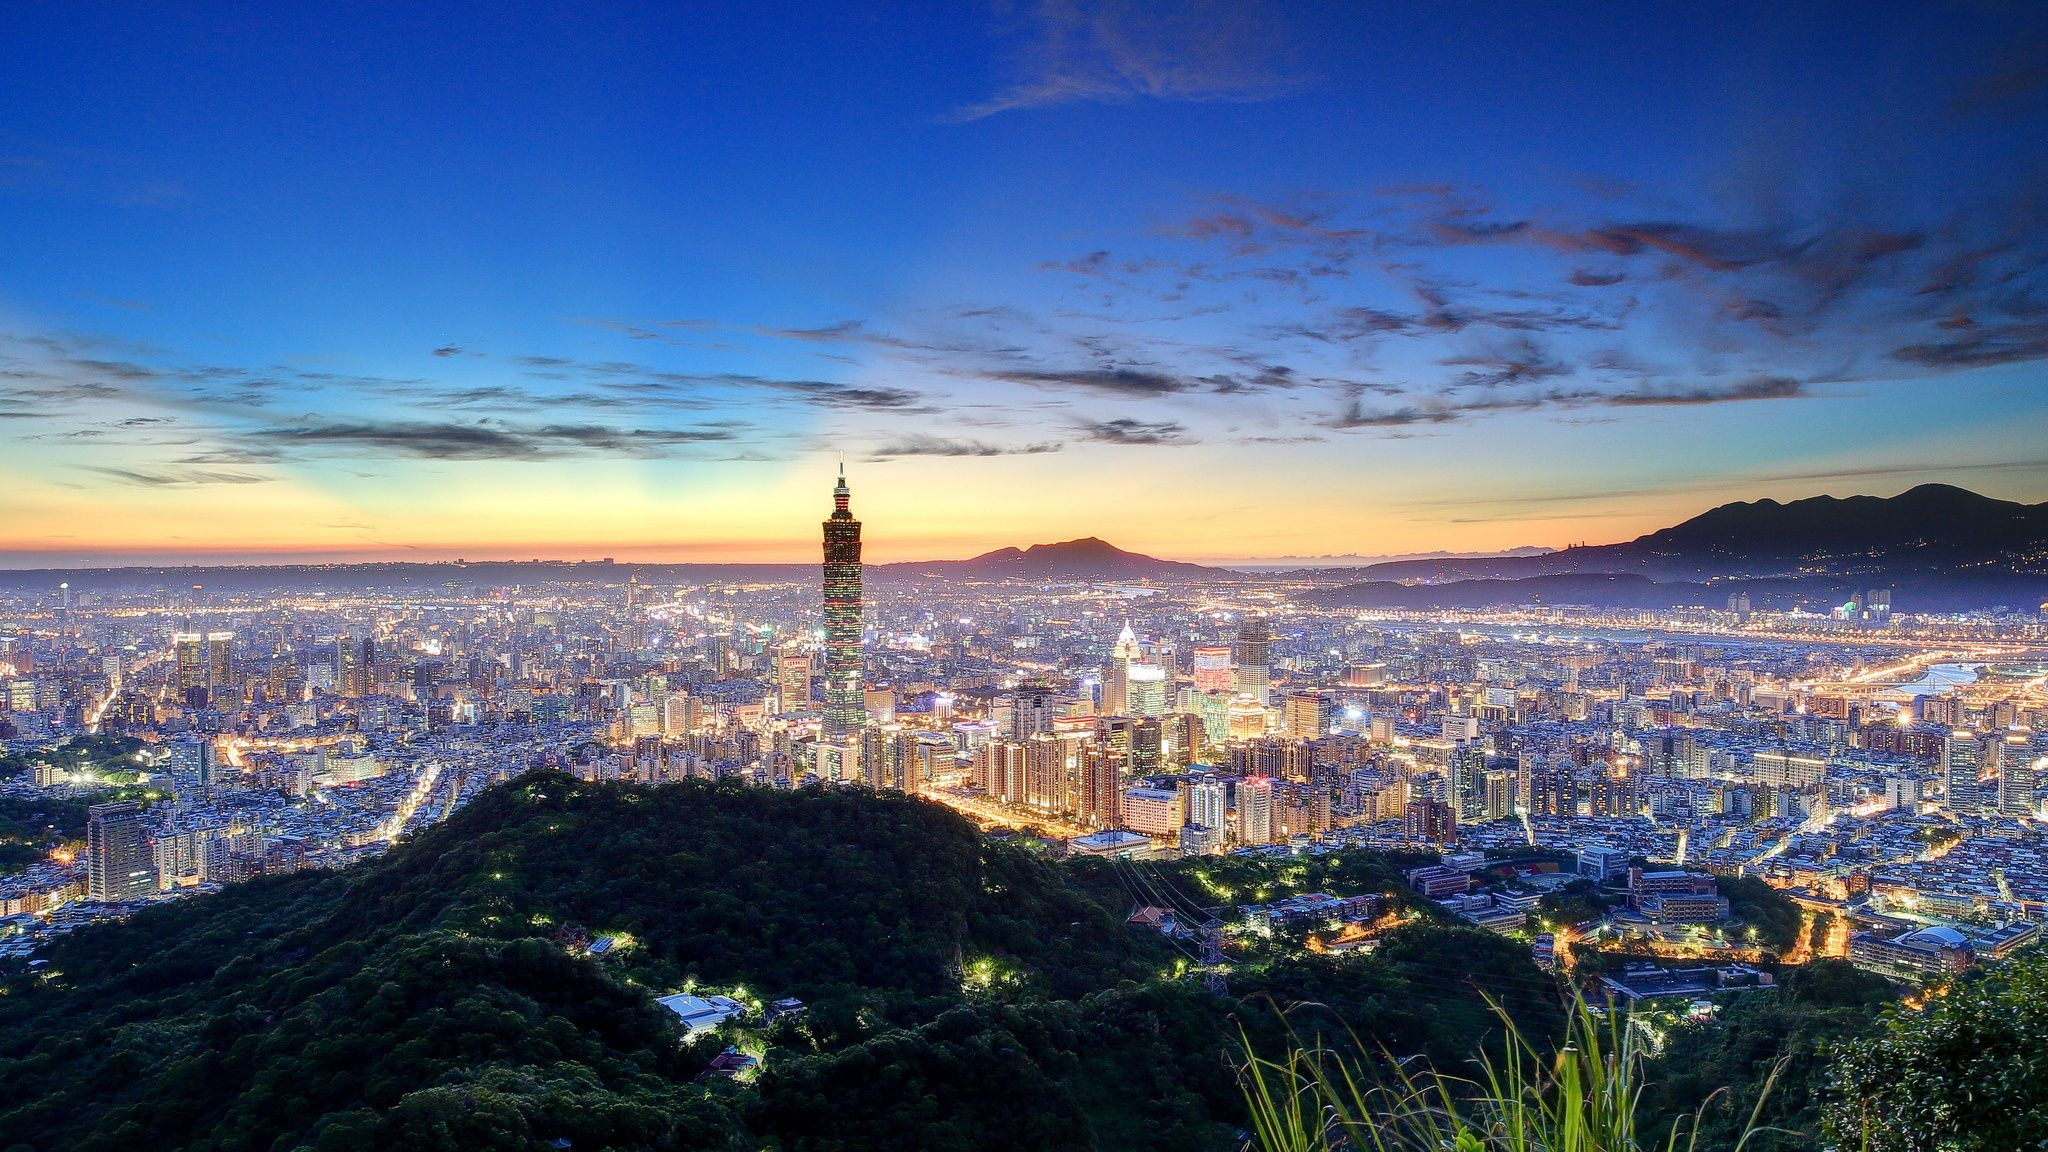 2048x1152 Taiwan, City, Skyline, High, Definition, Wallpaper, For, Desktop, Background,  Download, Photos, Free, Download Wallpaper, Hd Images, Cool Images, ...